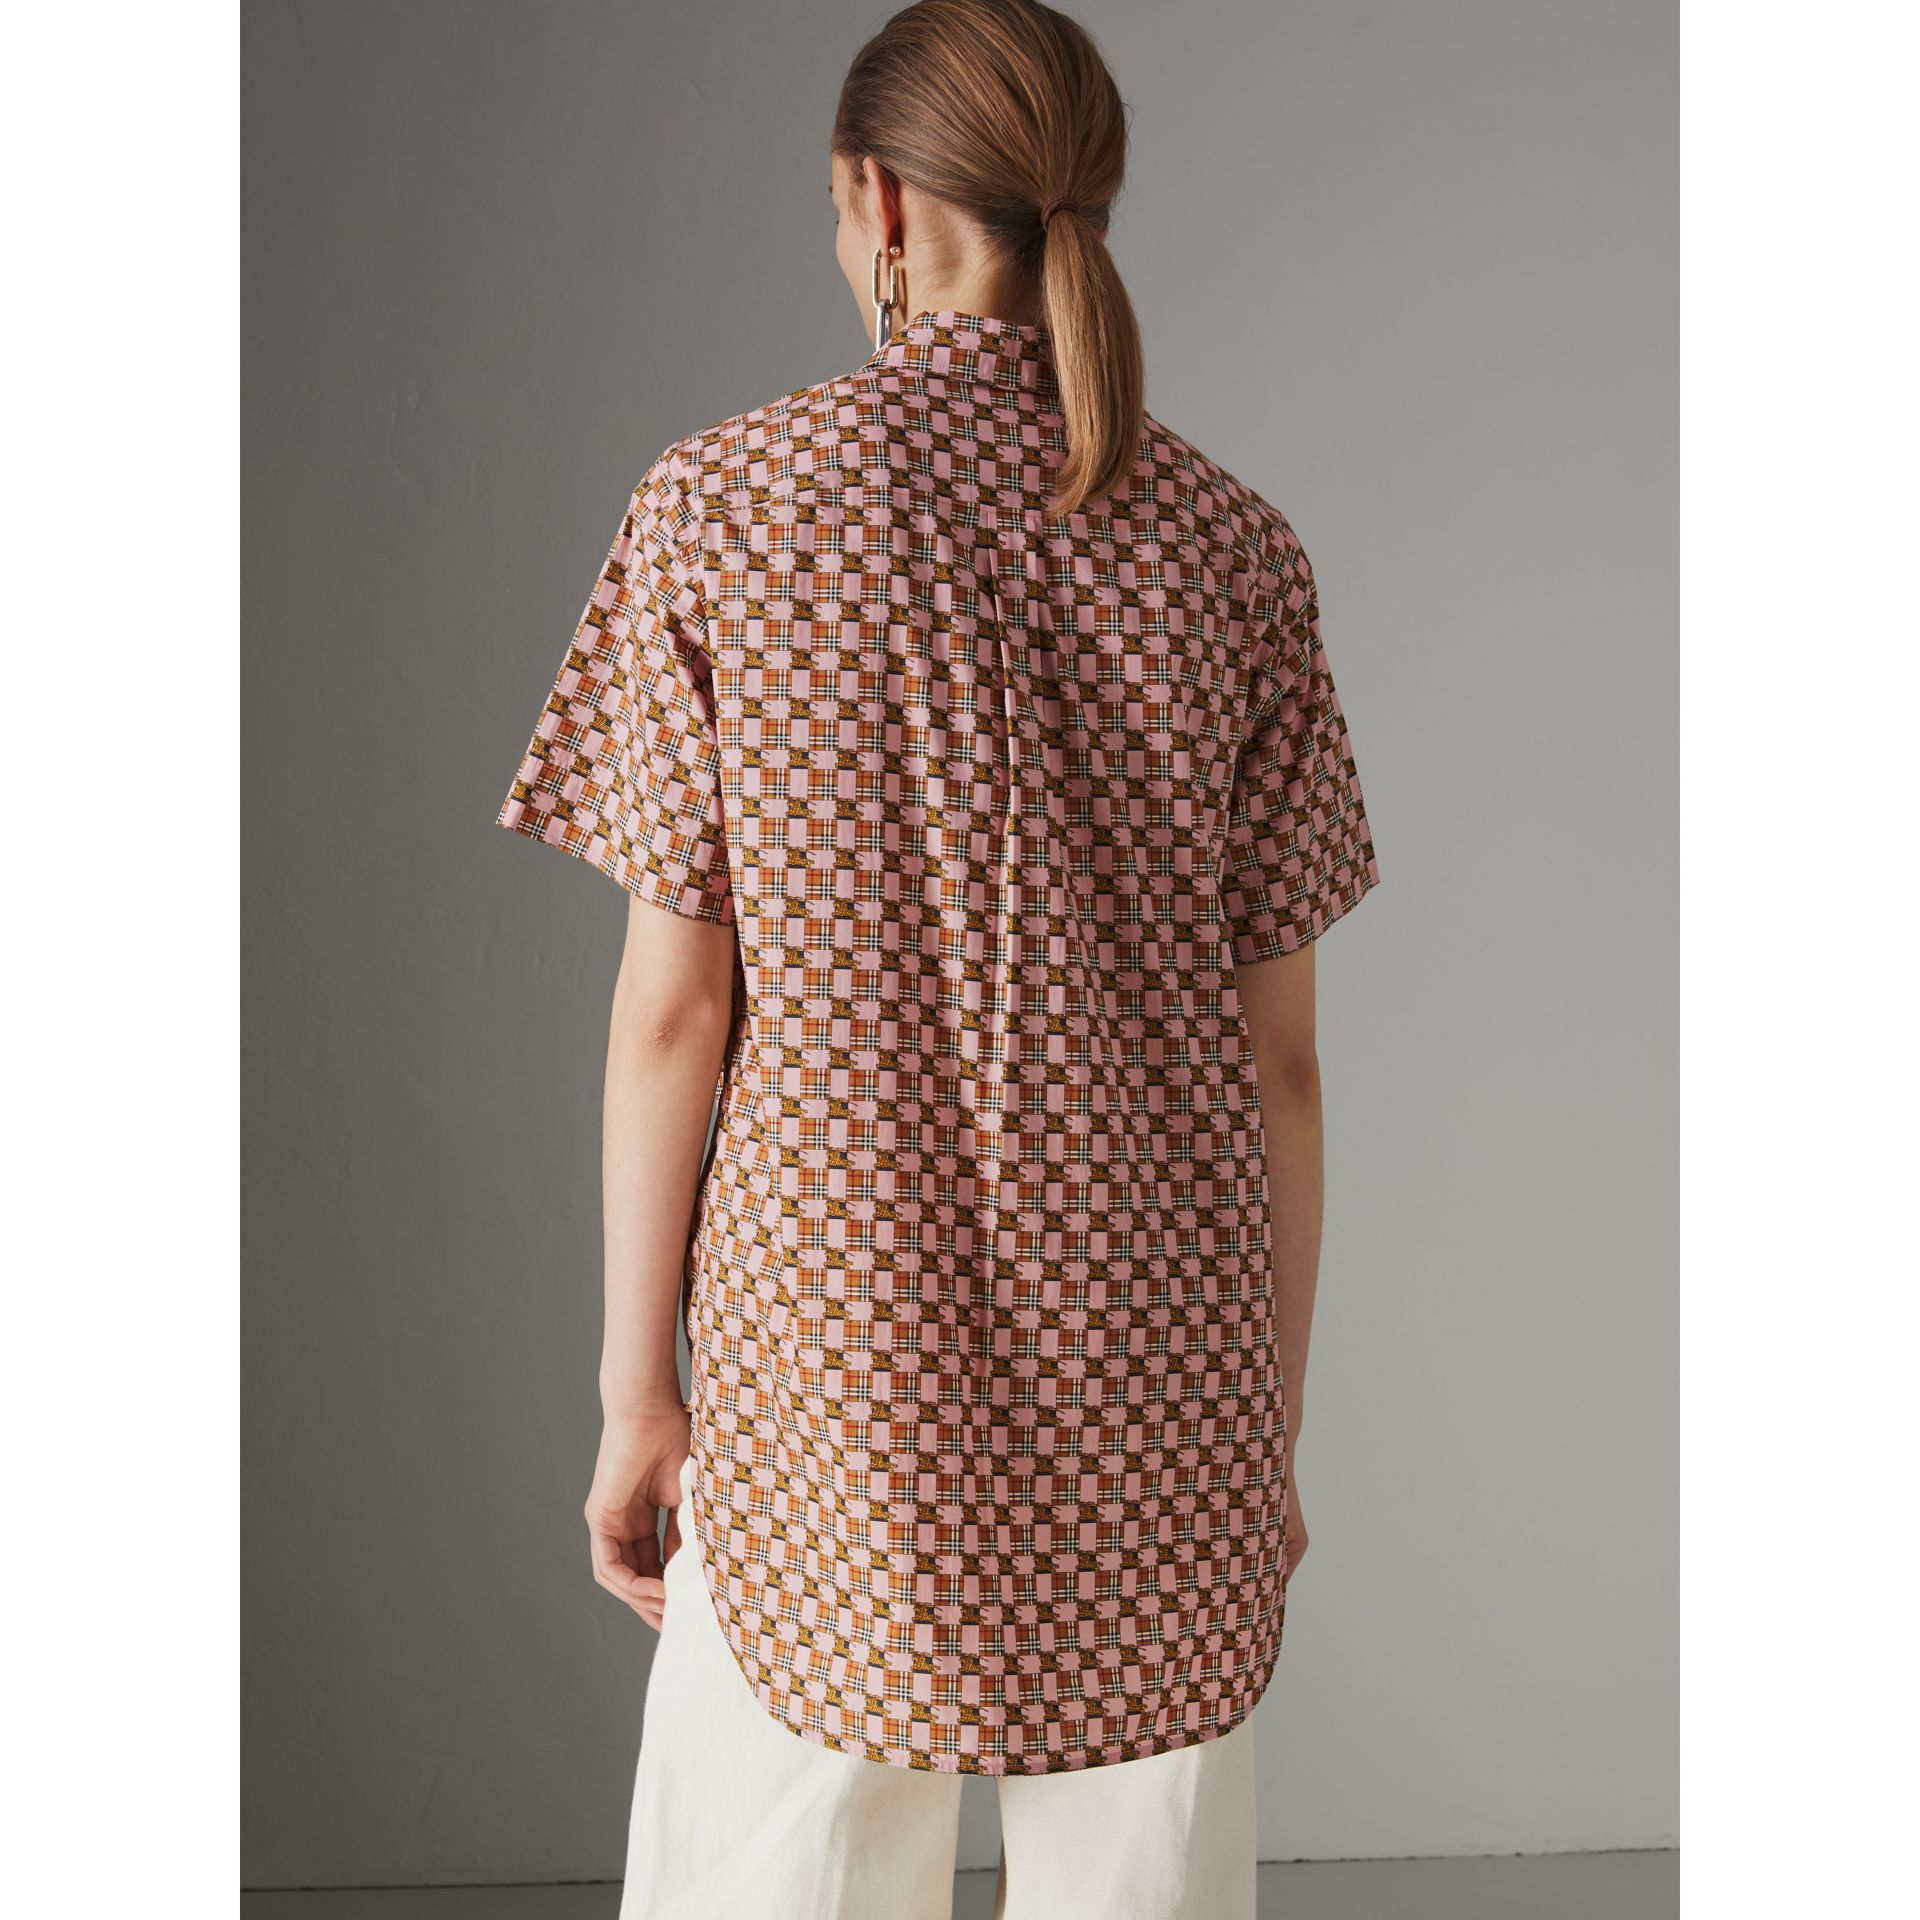 Short-sleeve Tiled Archive Print Cotton Shirt in Pink - Women | Burberry Australia - gallery image 2